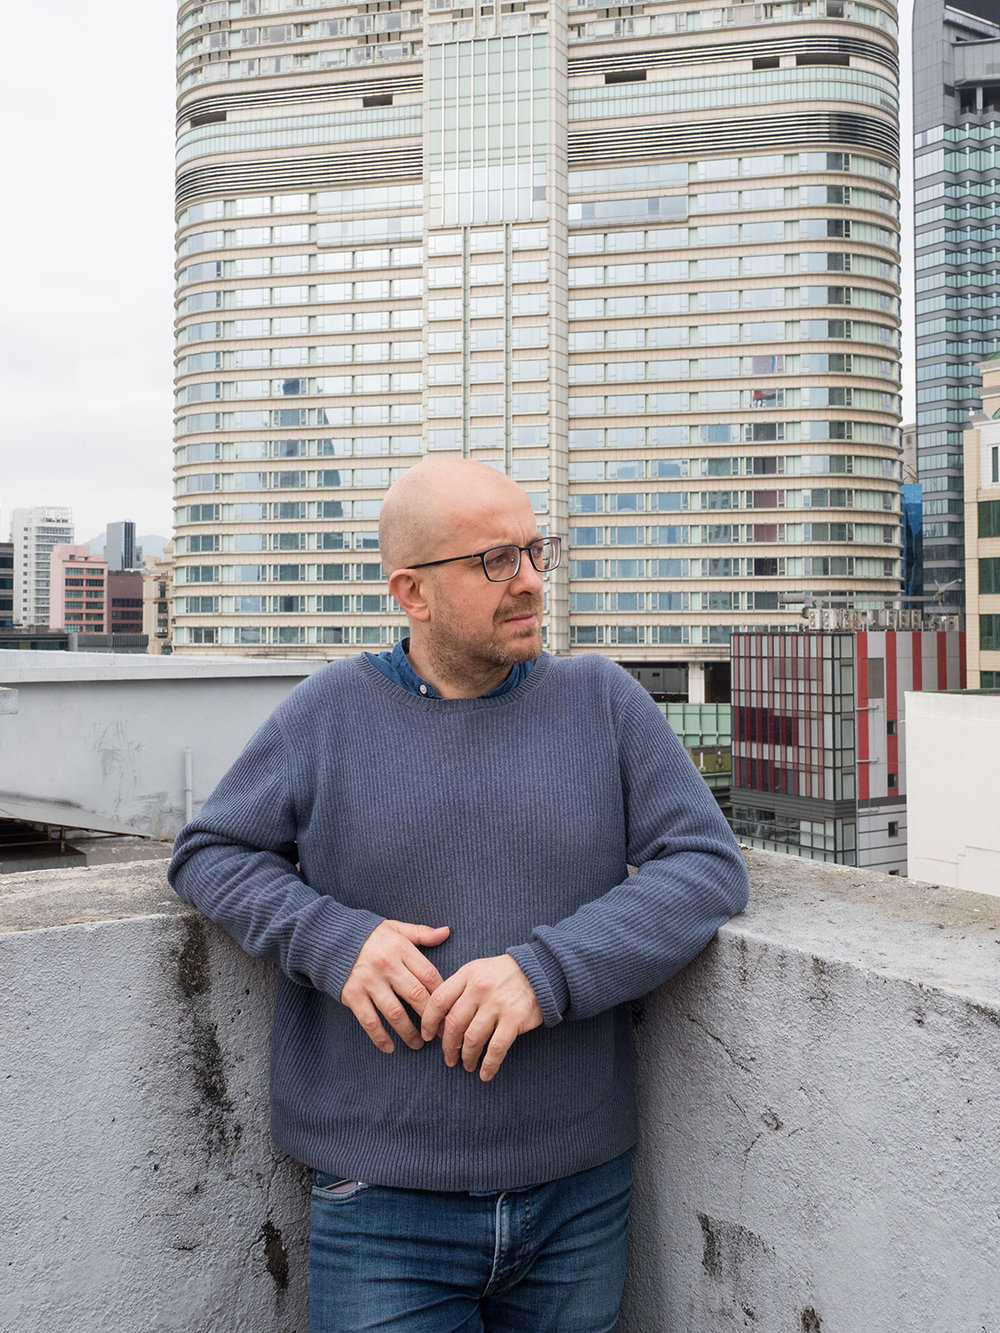 David Attali - David is a producer with years of experience on the field. From script to screen, idea to eyeball, he lives for stories, the ones that entertain and the ones that sell. He likes reading Ali Baba to his daughter in Cantonese.